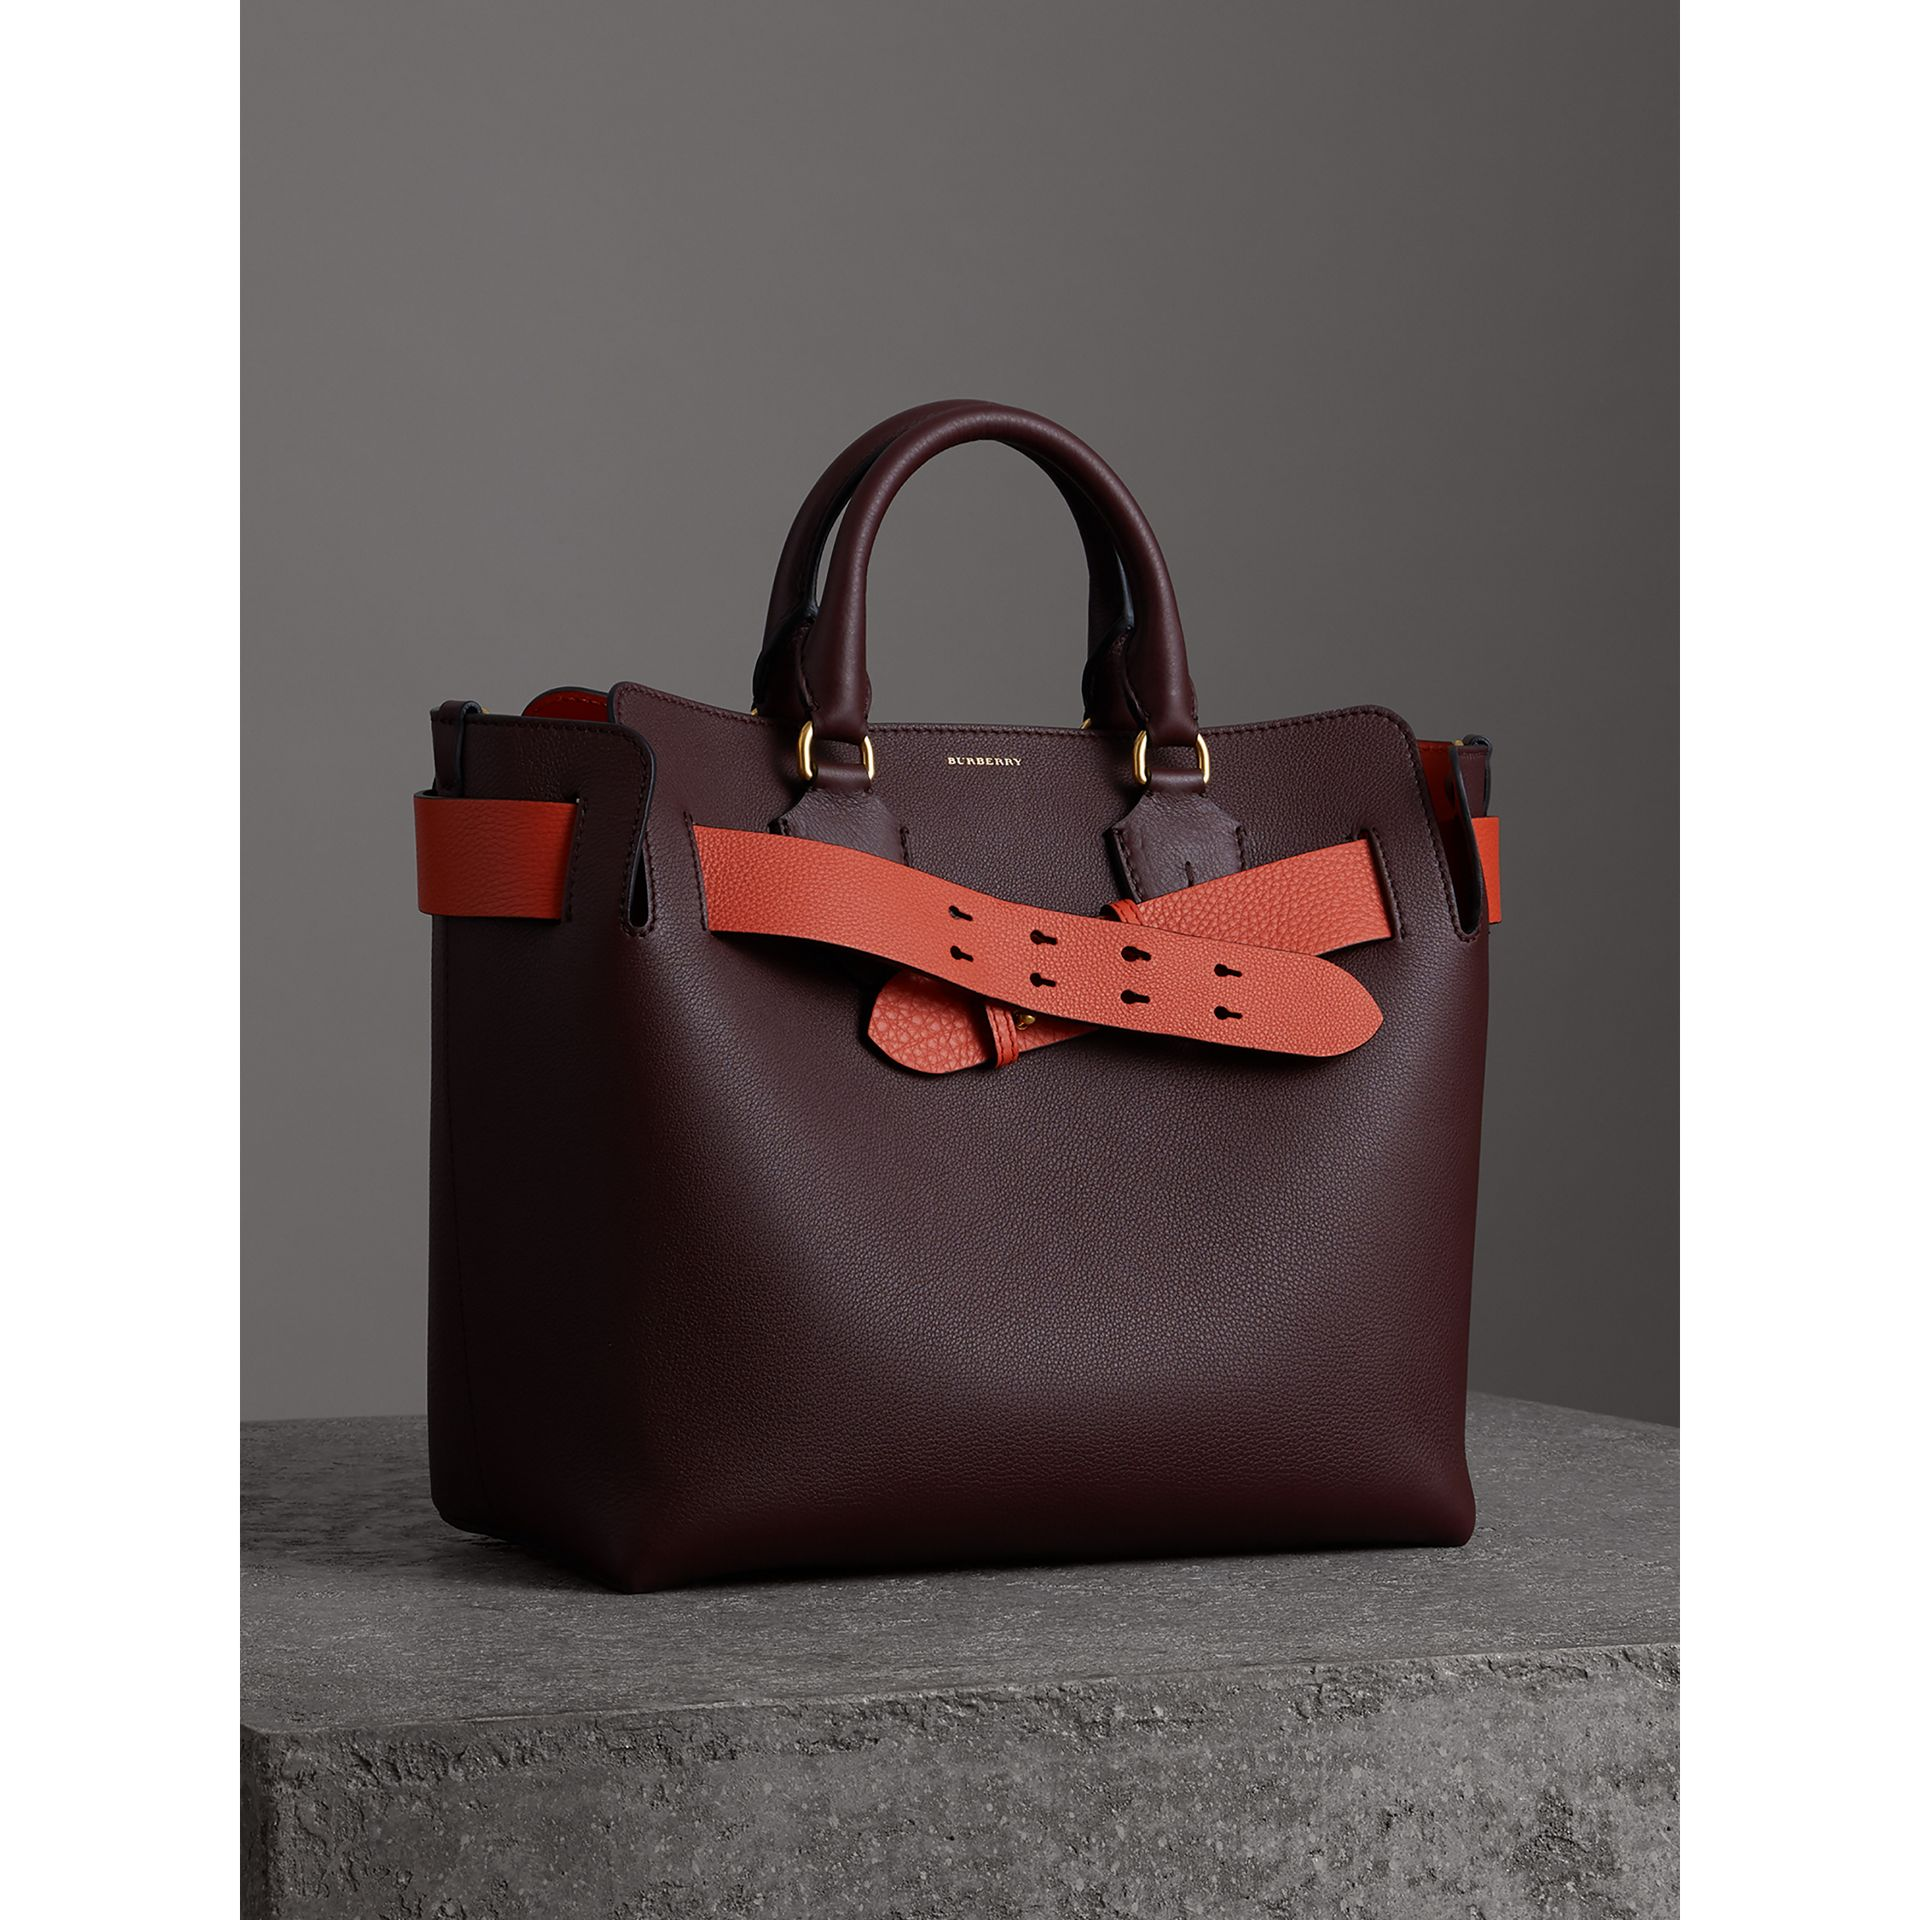 Sac The Belt moyen en cuir (Bordeaux Intense) - Femme | Burberry - photo de la galerie 6